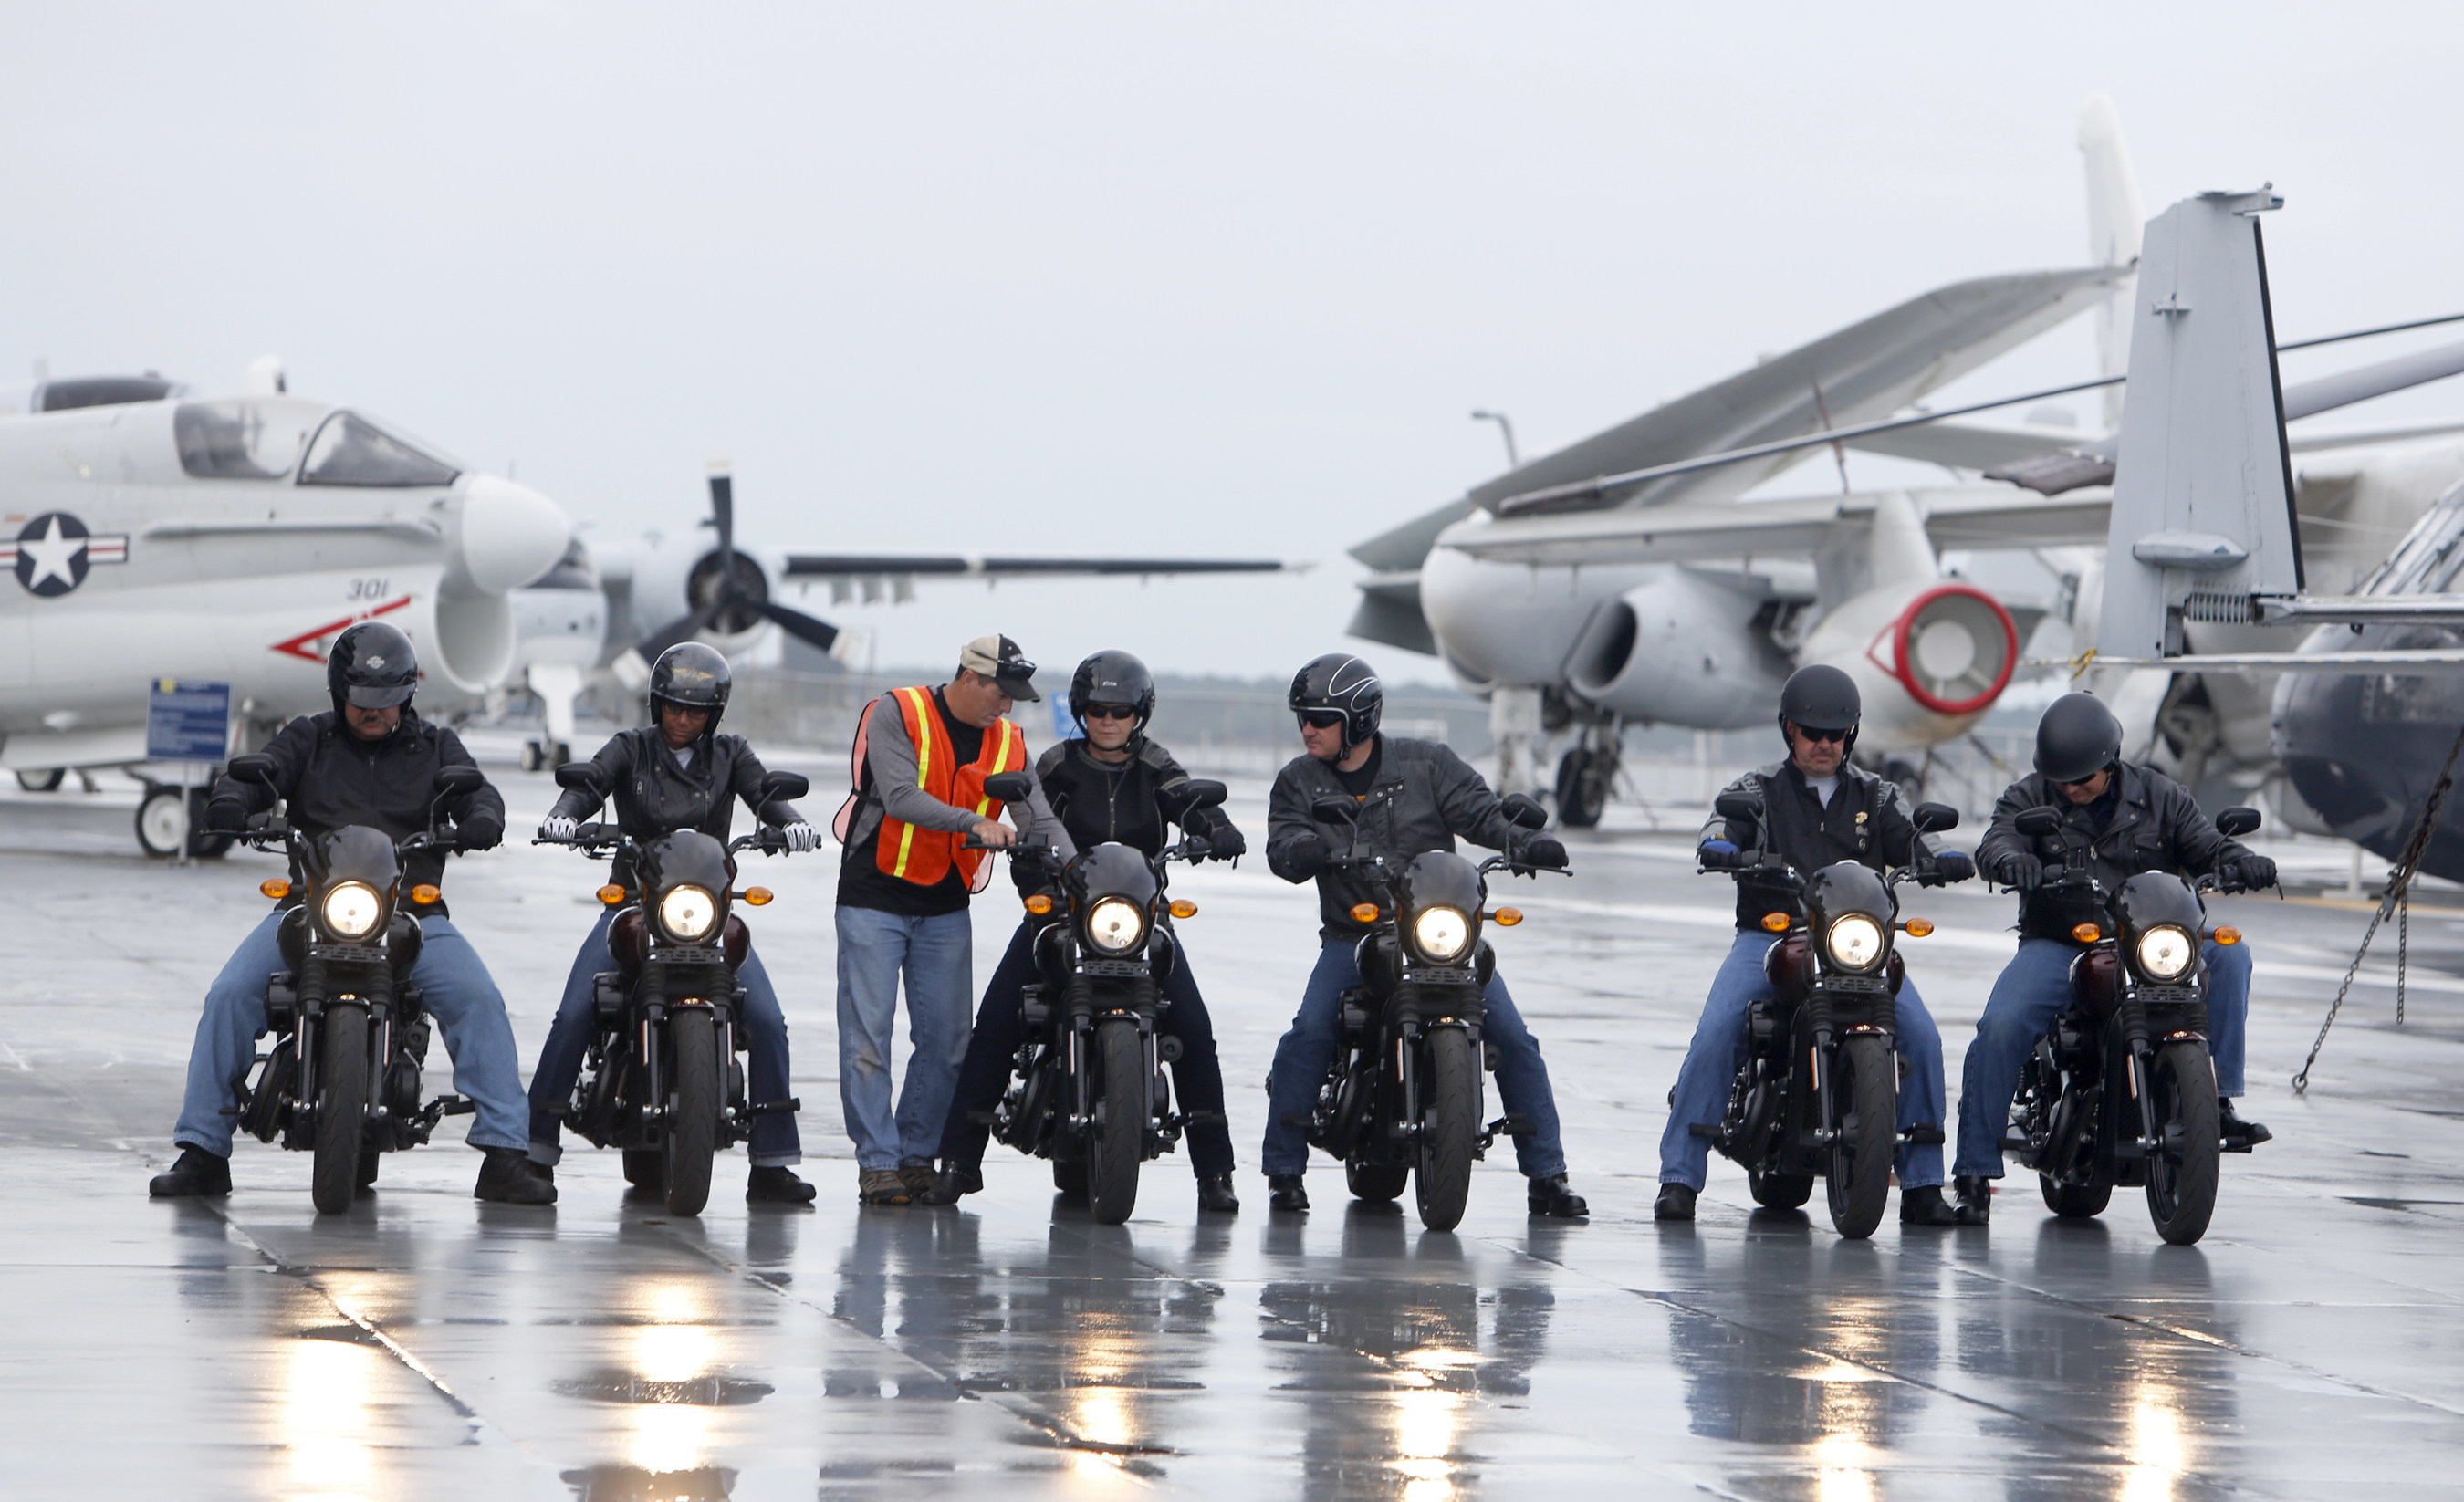 Harley-Davidson announced the extension of free Riding Academy motorcycle training to all current and former U.S. military. The program is now available to active-duty, retired, reservists and veterans Jan. 1-Dec. 31, 2016.